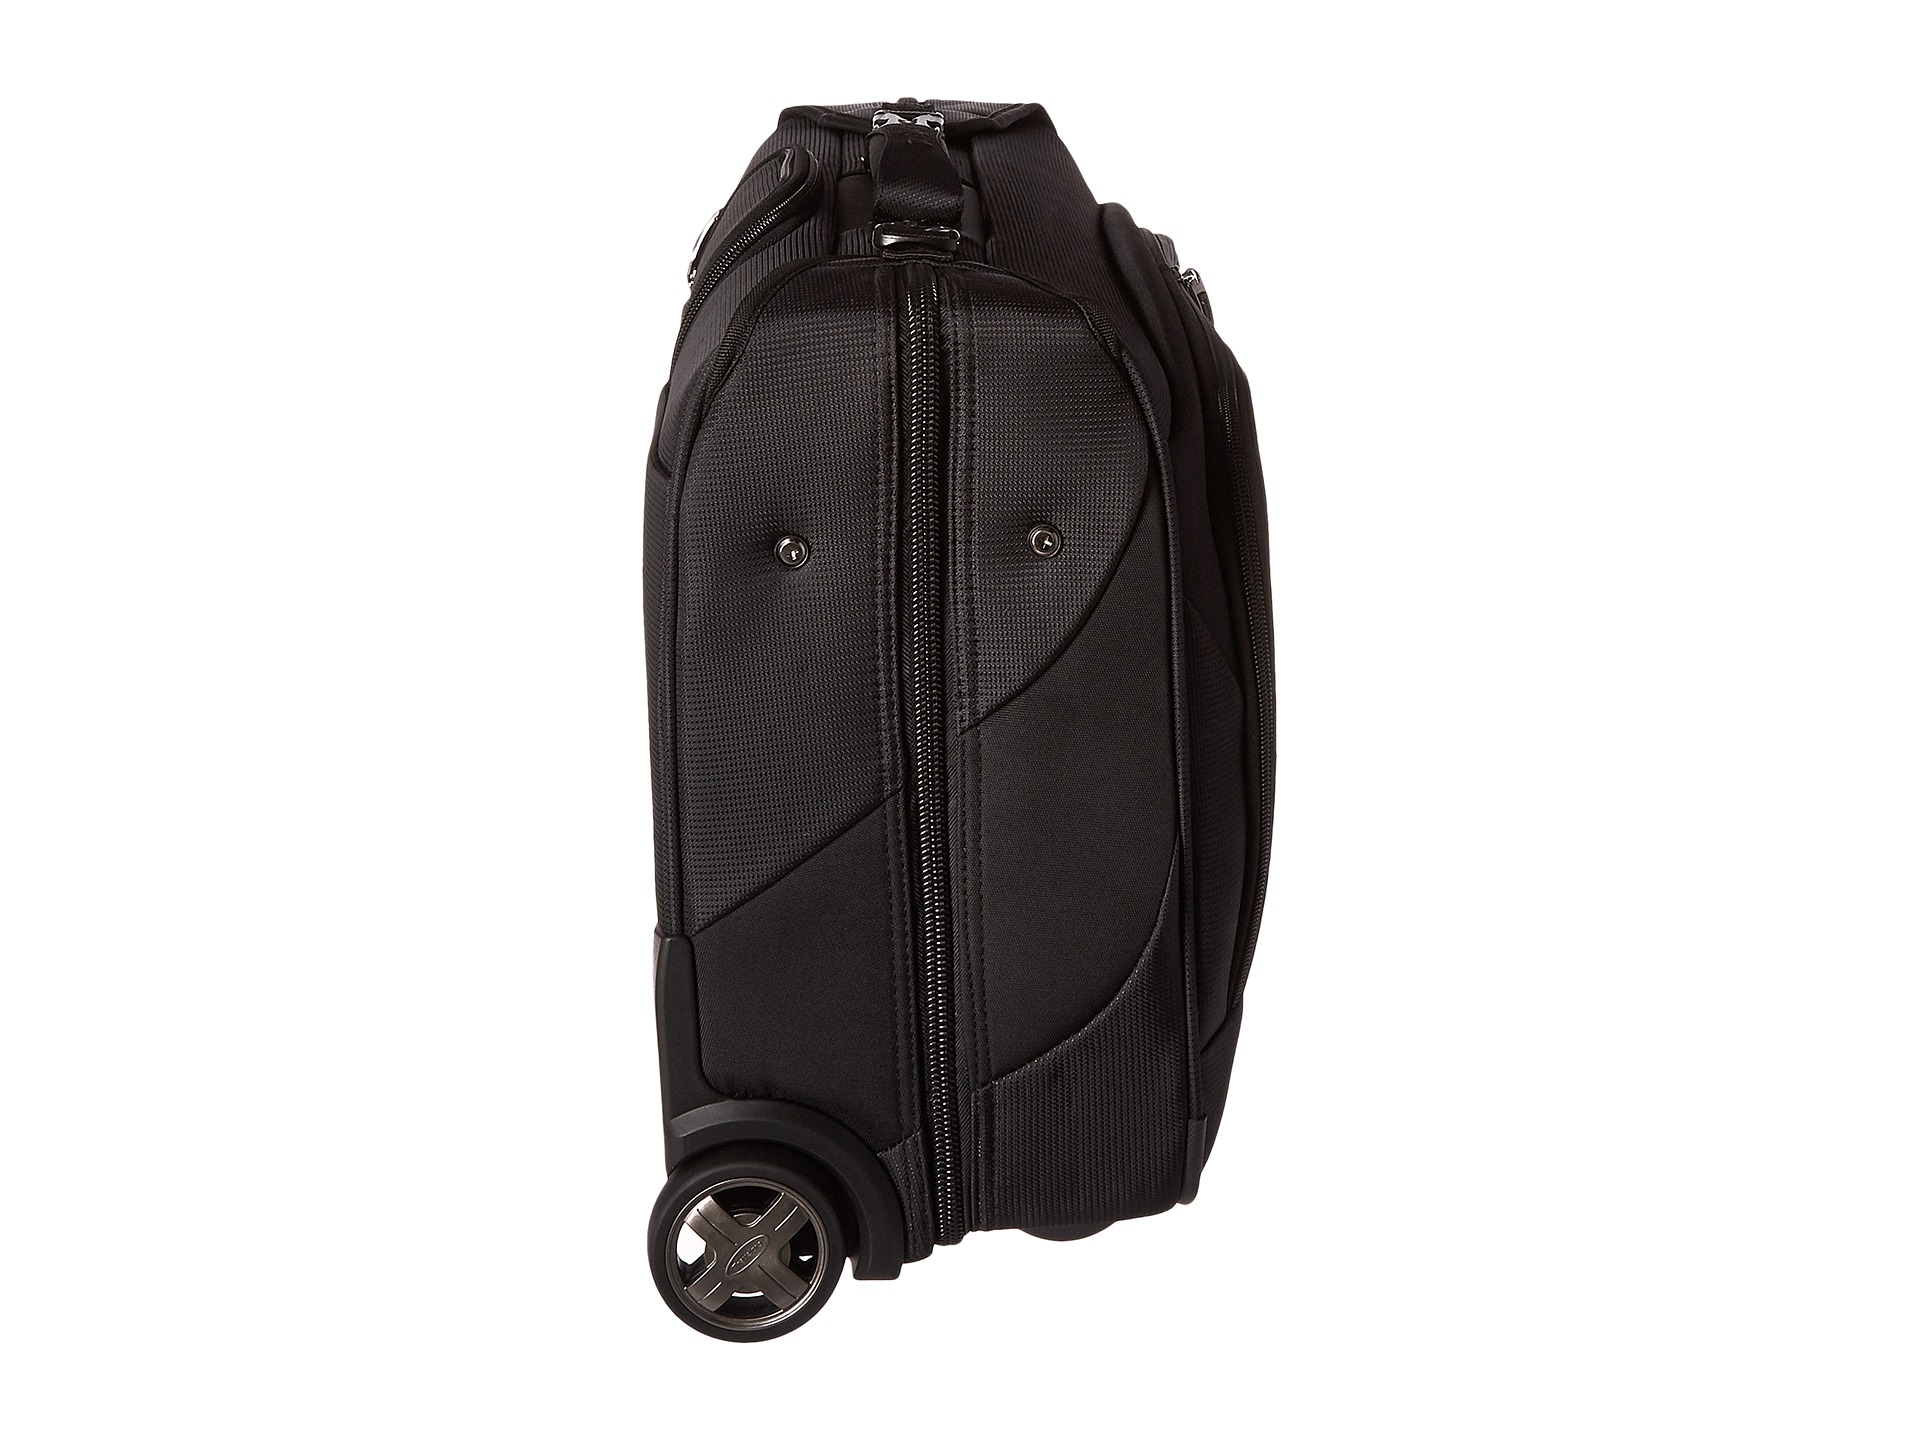 Travelpro maxlite 4 rolling carry on garment bag black for Wedding dress garment bag for plane